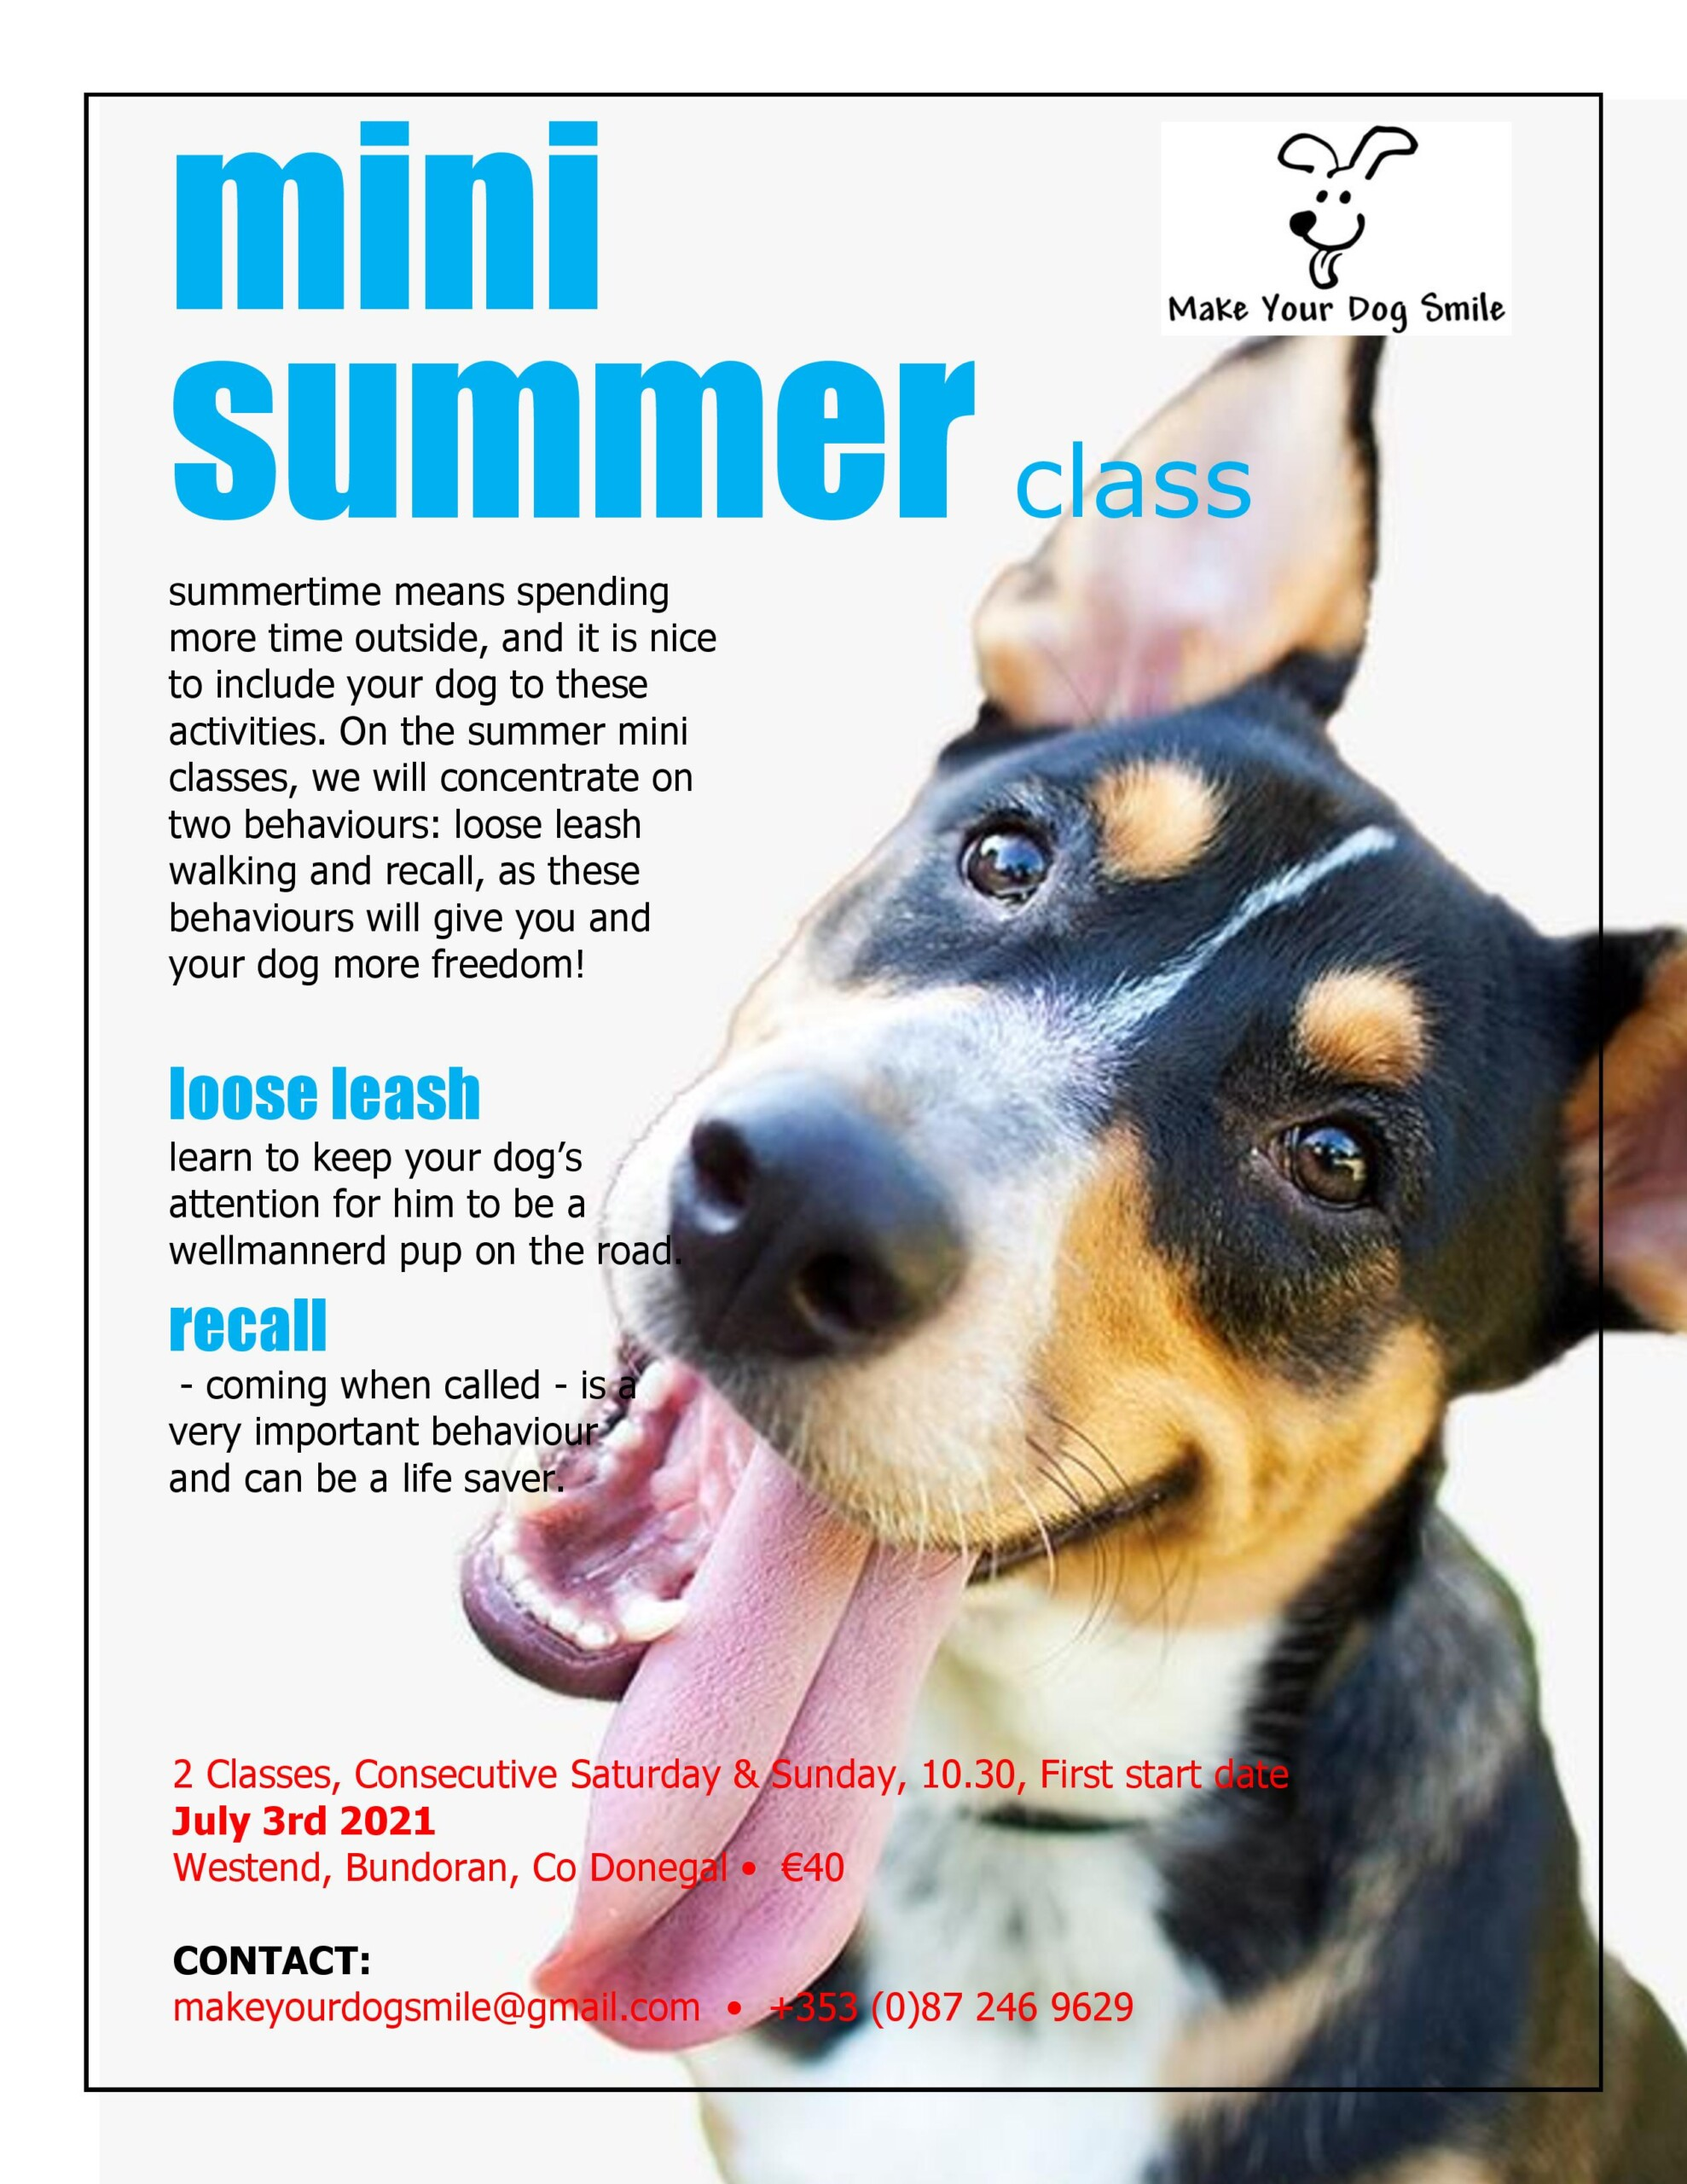 Mini Summer Class From Make Your Dog Smile